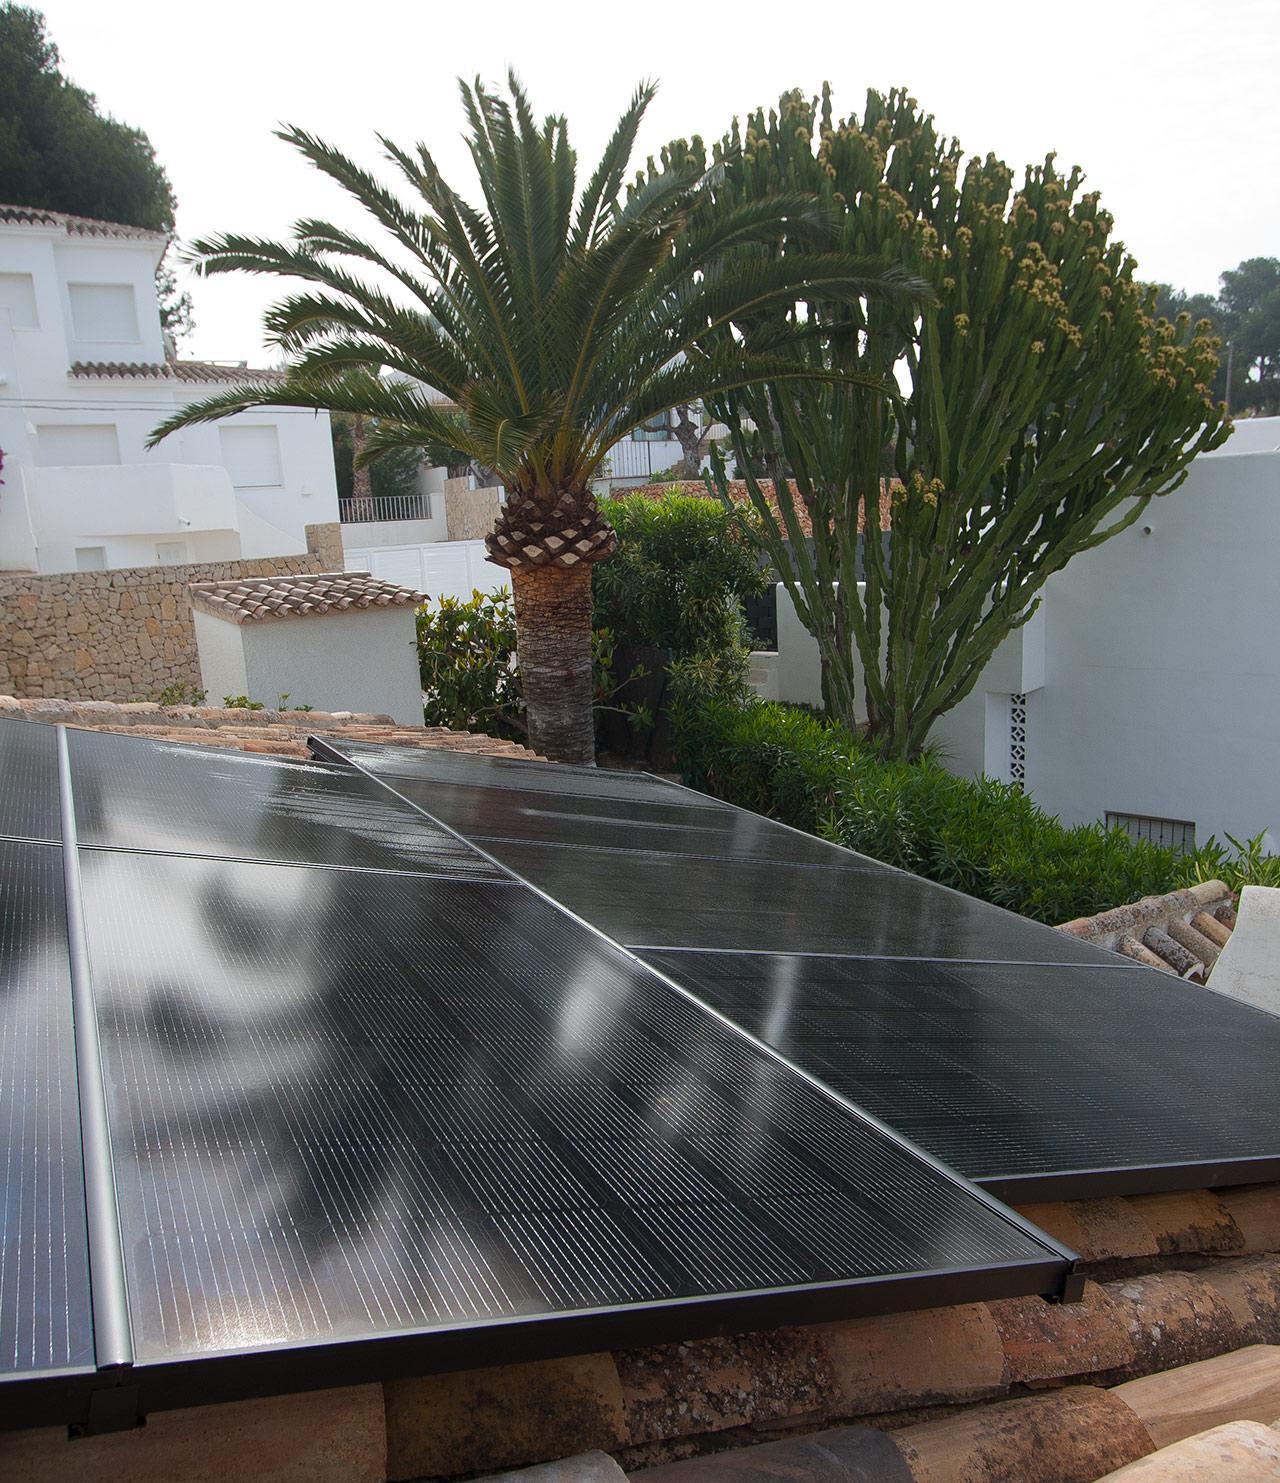 solar panels instalation in Moraira